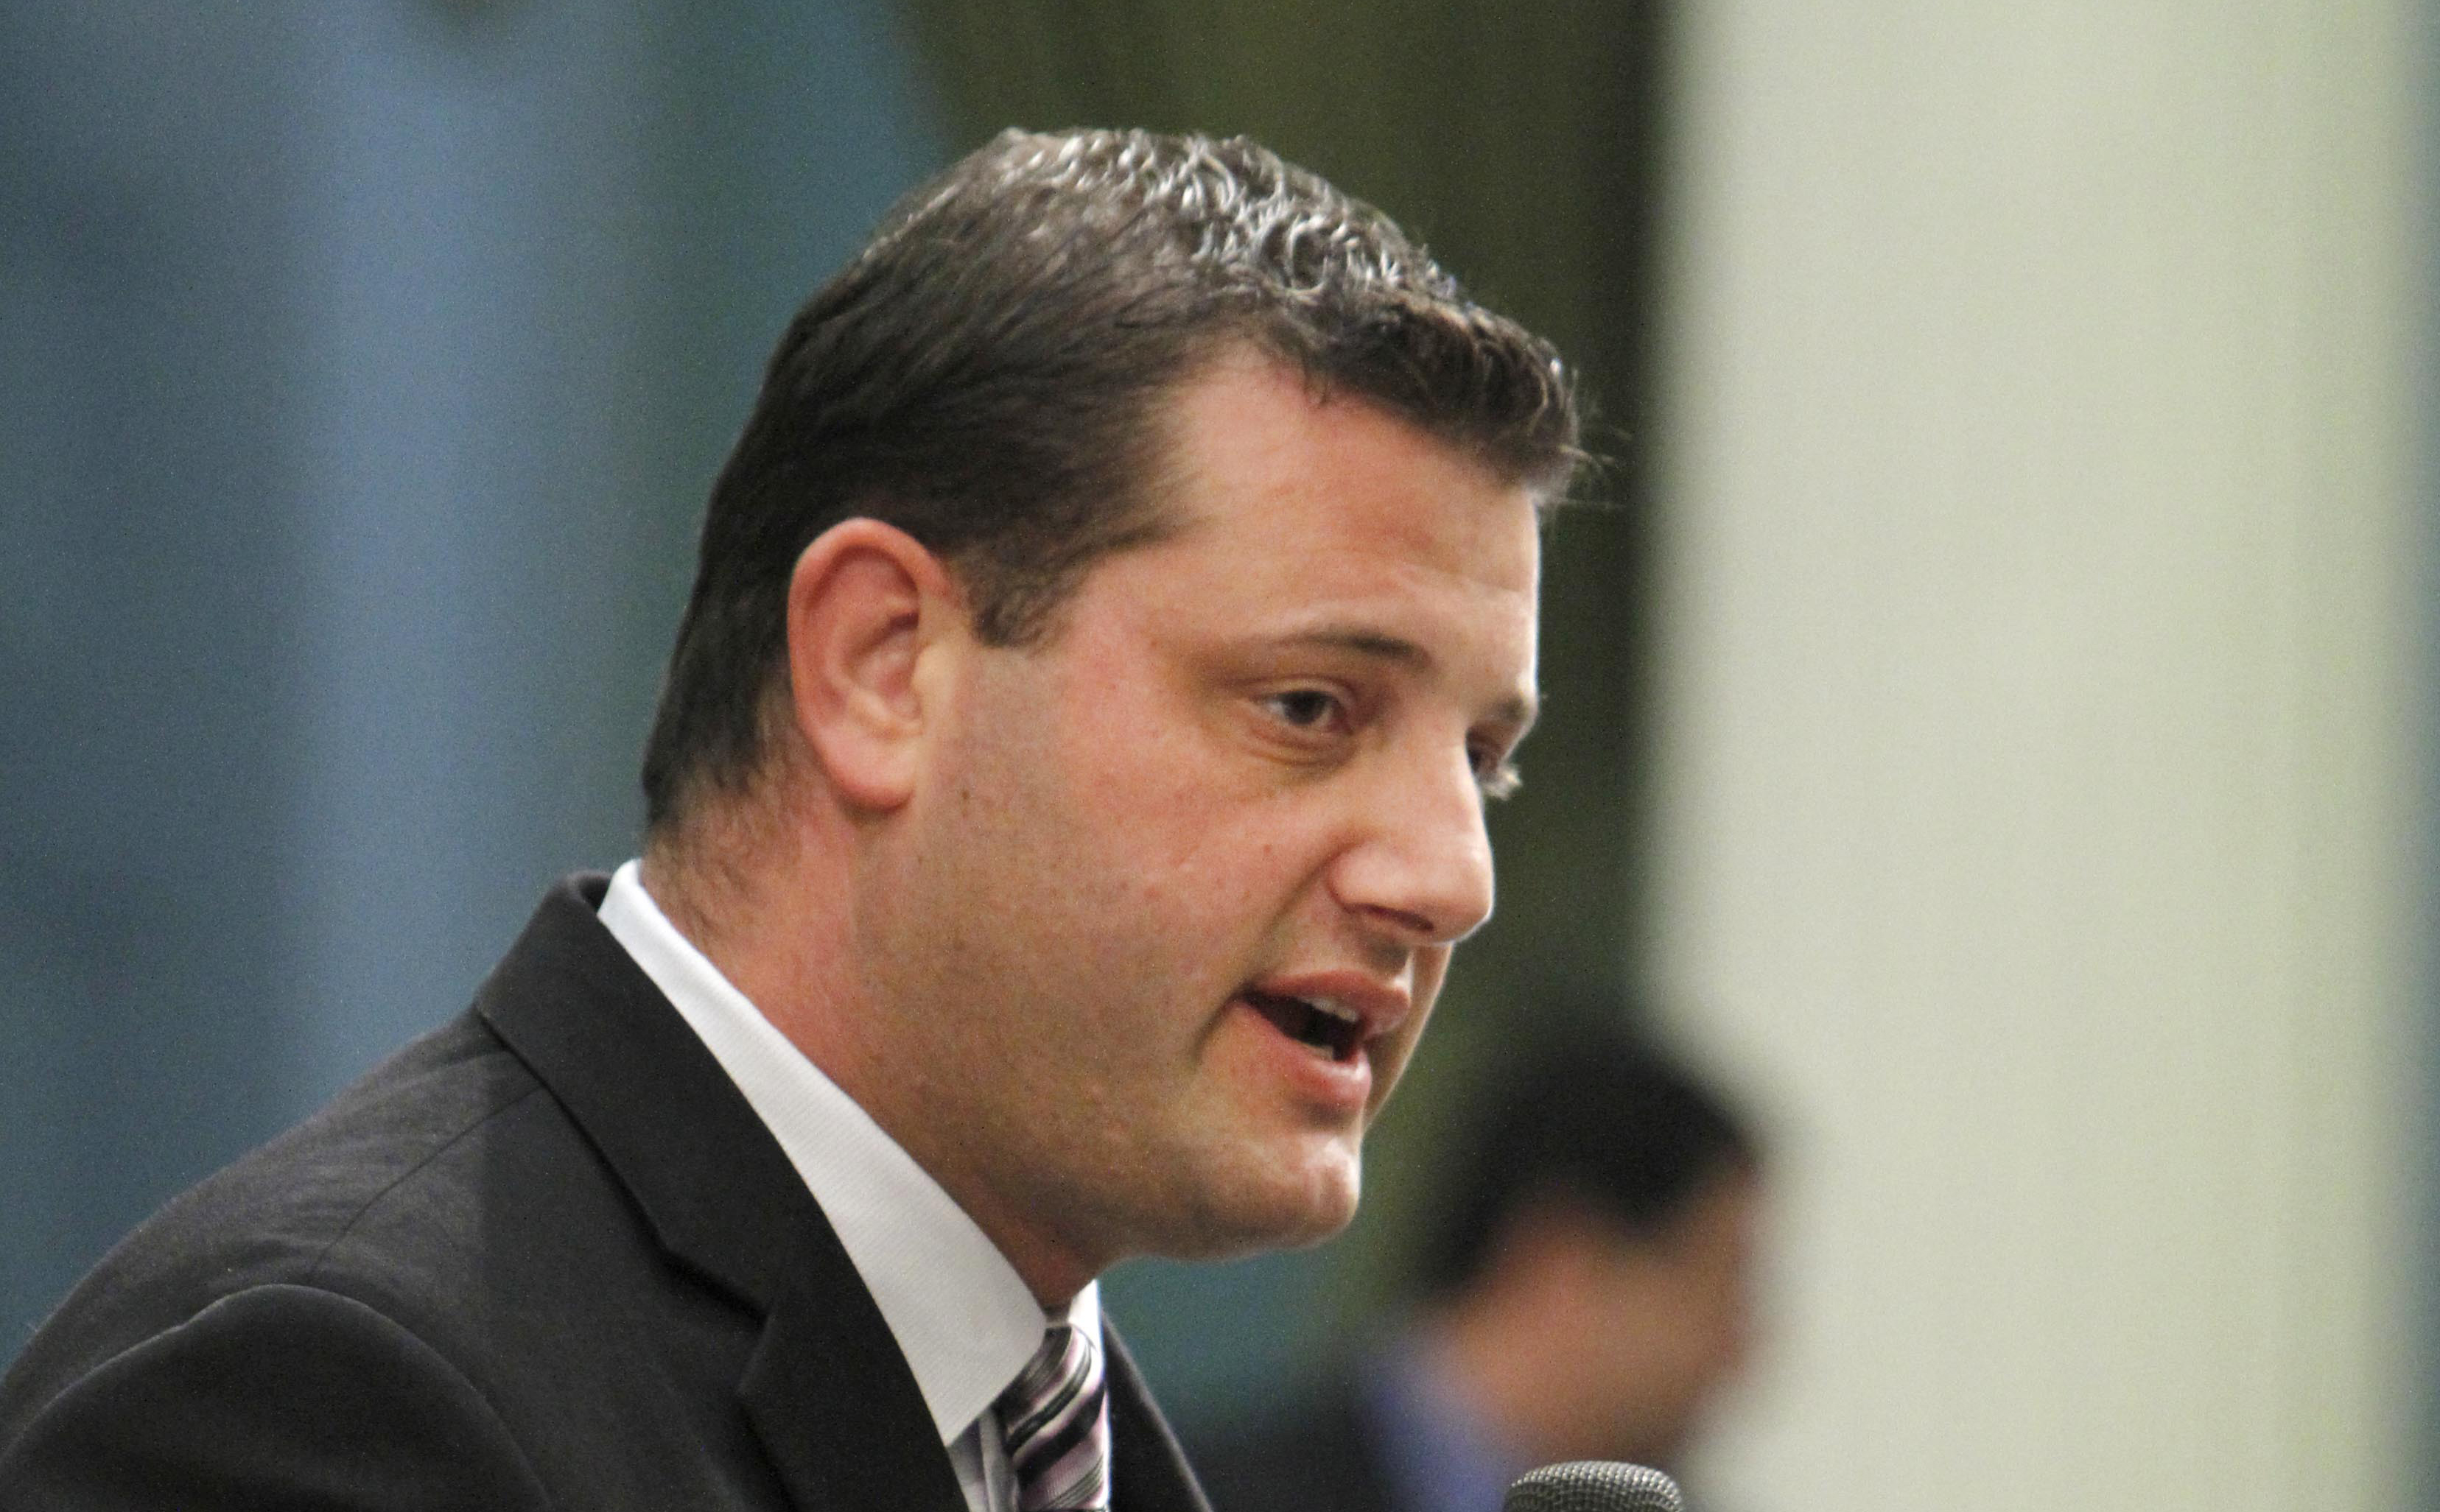 Republican Rep. David Valadao (R-Hanford) conceded to Democrat T. J. Cox on Thursday in the 21st Congressional District race.